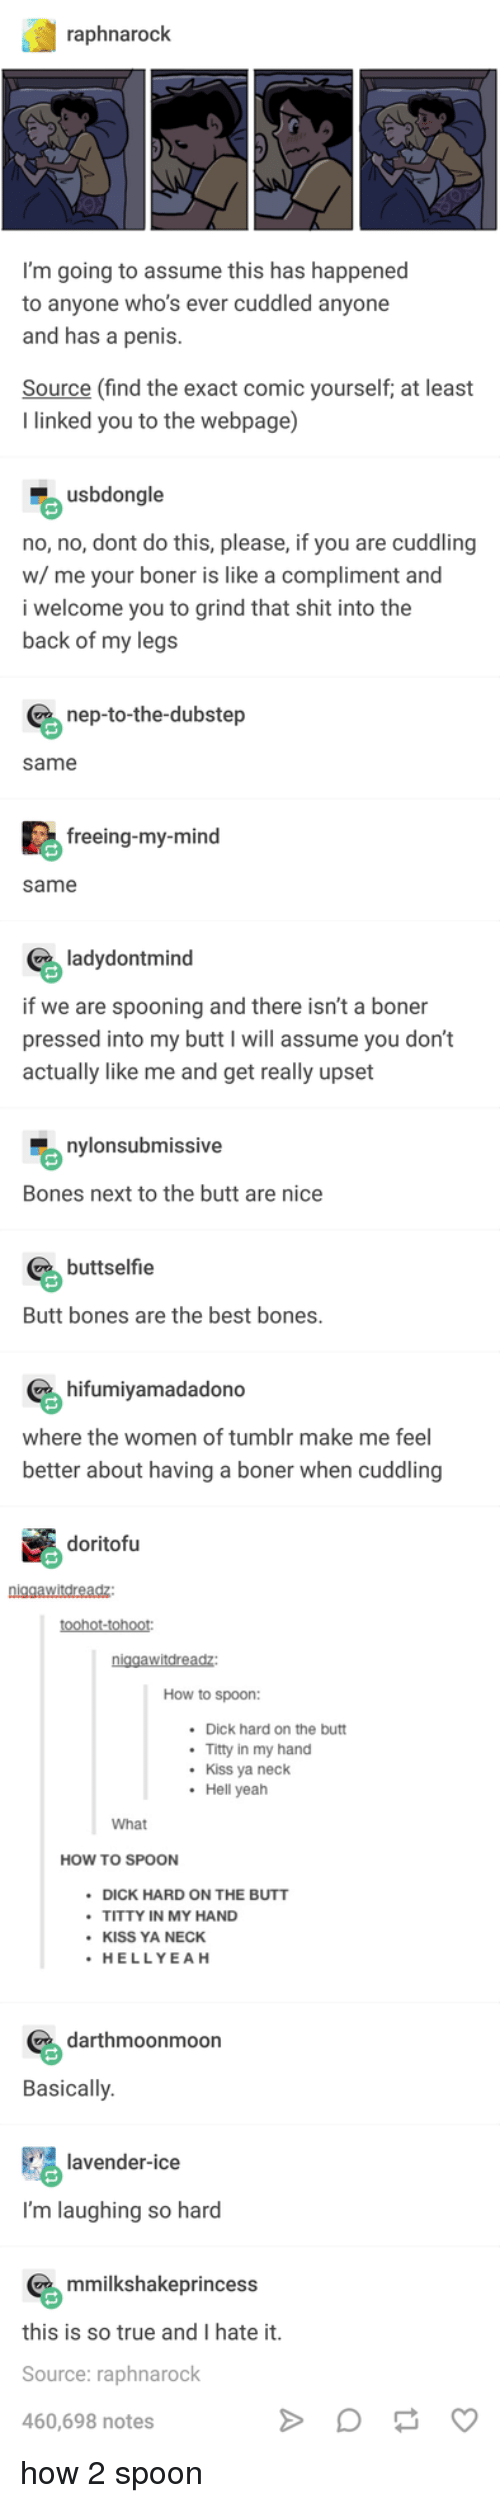 Boner, Bones, and Butt: raphnarock  I'm going to assume this has happened  to anyone who's ever cuddled anyone  and has a penis  Source (find the exact comic yourself, at least  I linked you to the webpage)  usbdongle  no, no, dont do this, please, if you are cuddling  w/ me your boner is like a compliment and  i welcome you to grind that shit into the  back of my legs  nep-to-the-dubstep  same  freeing-my-mind  same  ladydontmind  if we are spooning and there isn't a boner  pressed into my butt I will assume you don't  actually like me and get really upset  nylonsubmissive  Bones next to the butt are nice  buttselfie  Butt bones are the best bones  hifumiyamadadono  where the women of tumblr make me feel  better about having a boner when cuddling  doritofu  toohot-tohoot  How to spoon:  Dick hard on the butt  Titty in my hand  Kiss ya neck  Hell yeah  .  What  HOW TO SPOON  DICK HARD ON THE BUTT  TITTY IN MY HAND  KISS YA NECK  HELLYEAH  darthmoonmoon  Basically  lavender-ice  I'm laughing so hard  mmilkshakeprincess  this is so true and I hate it  Source: raphnarock  460,698 notes how 2 spoon